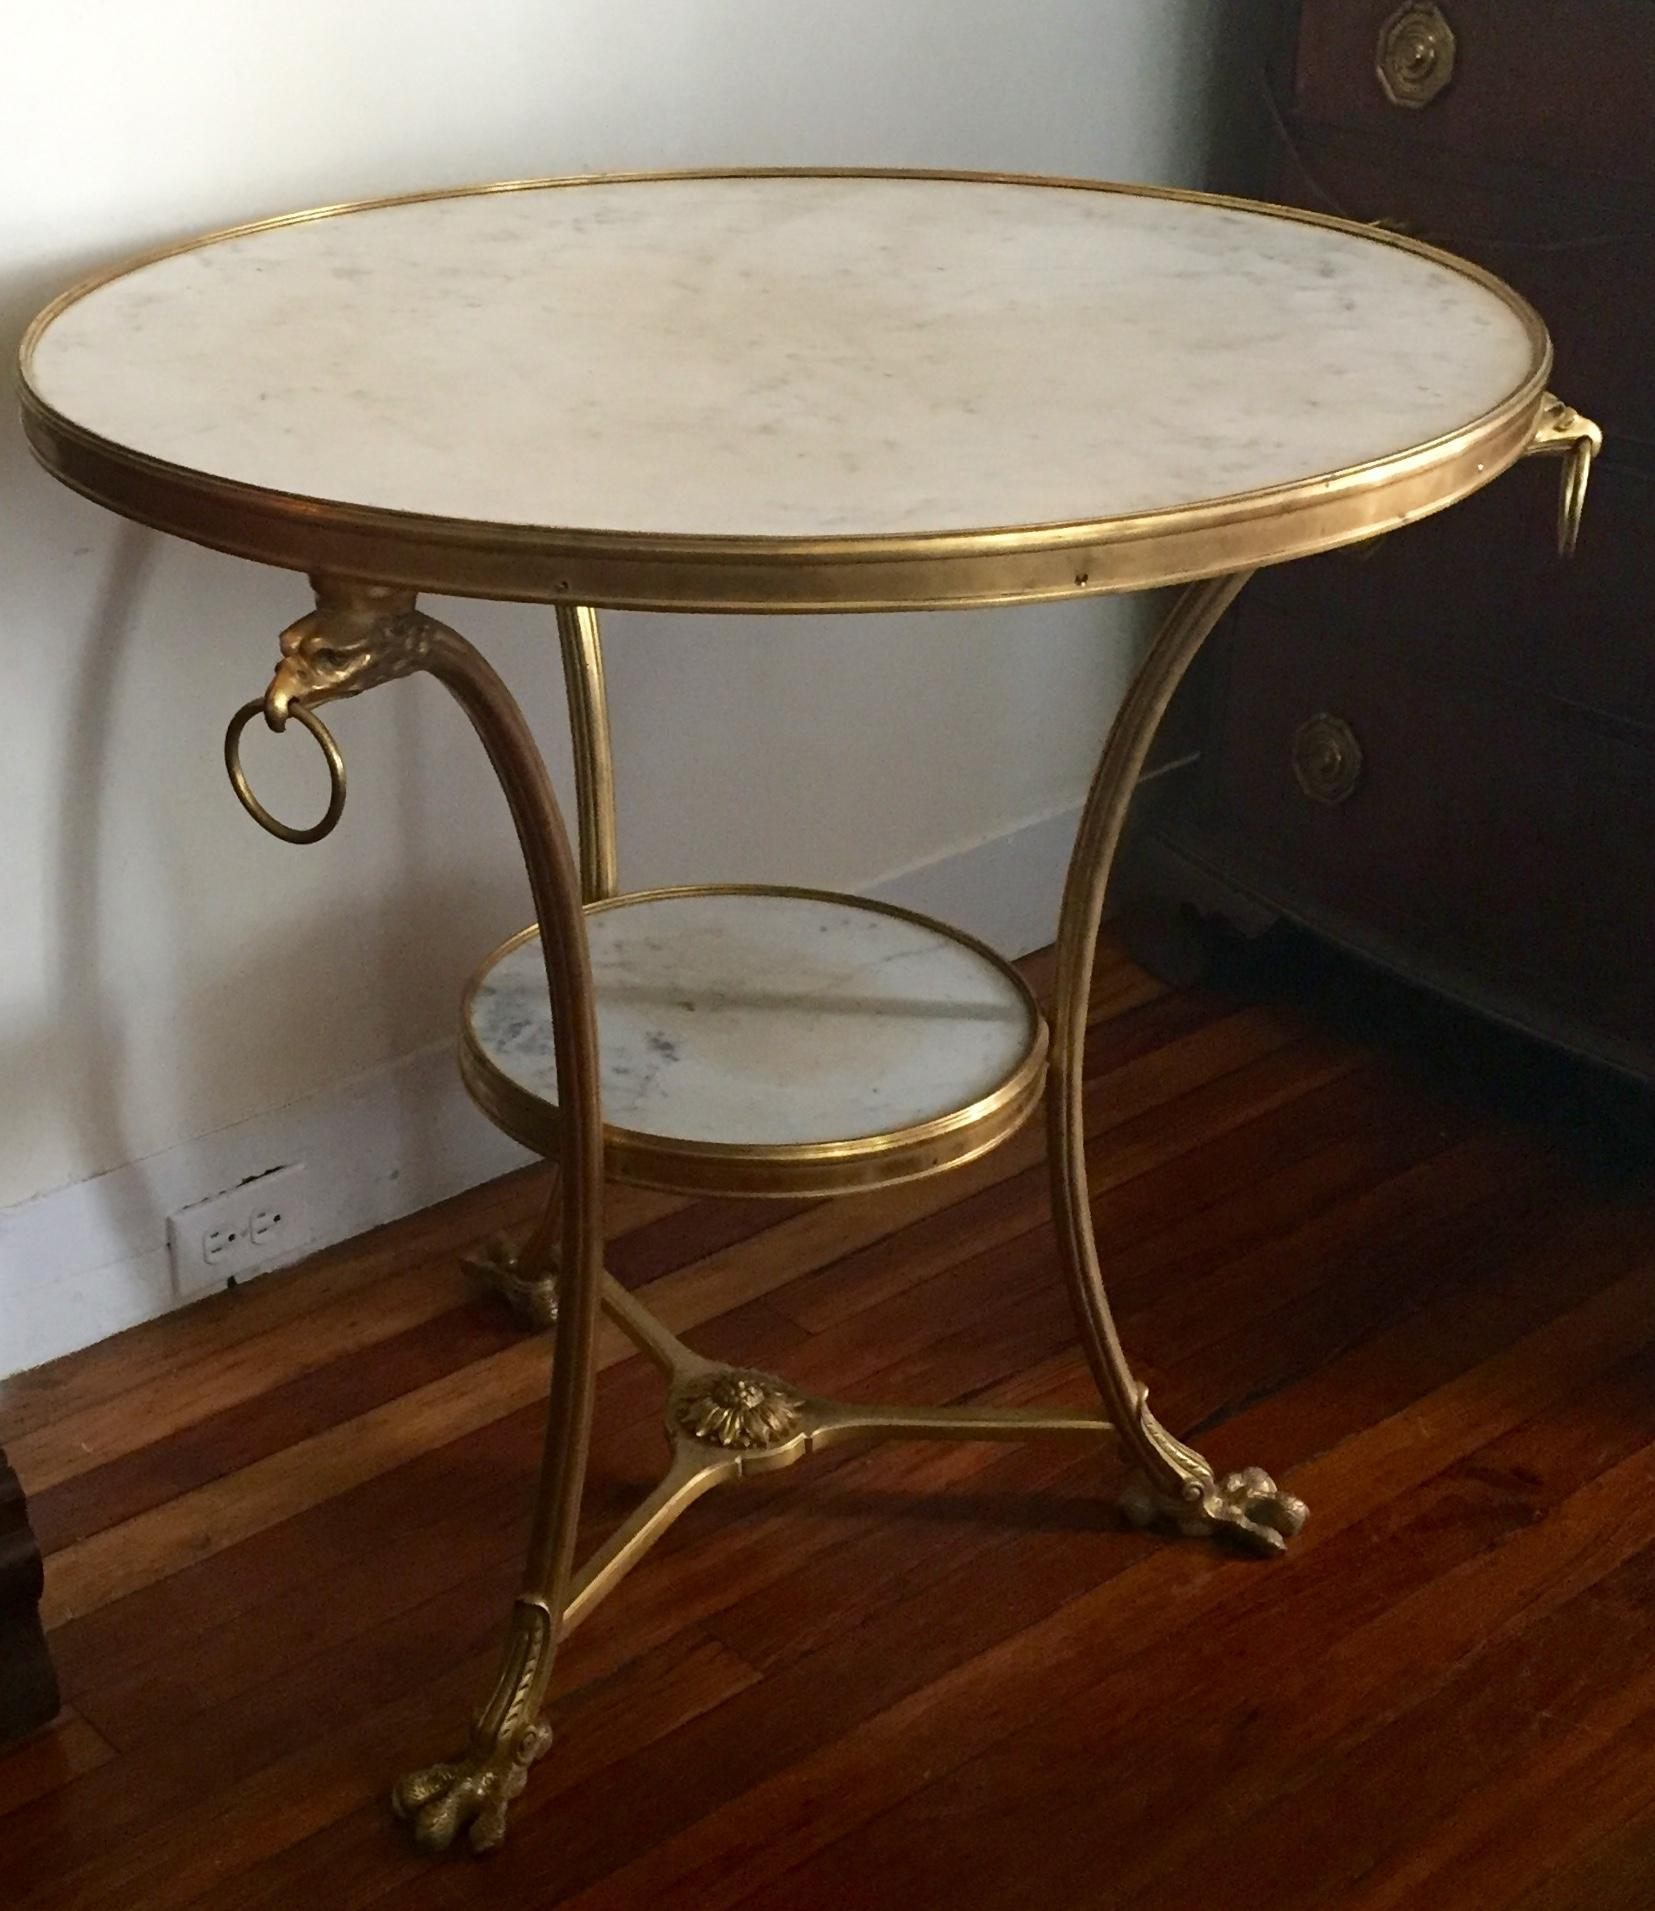 Antique French Gilt Bronze & White Marble Round Gueridon Table in